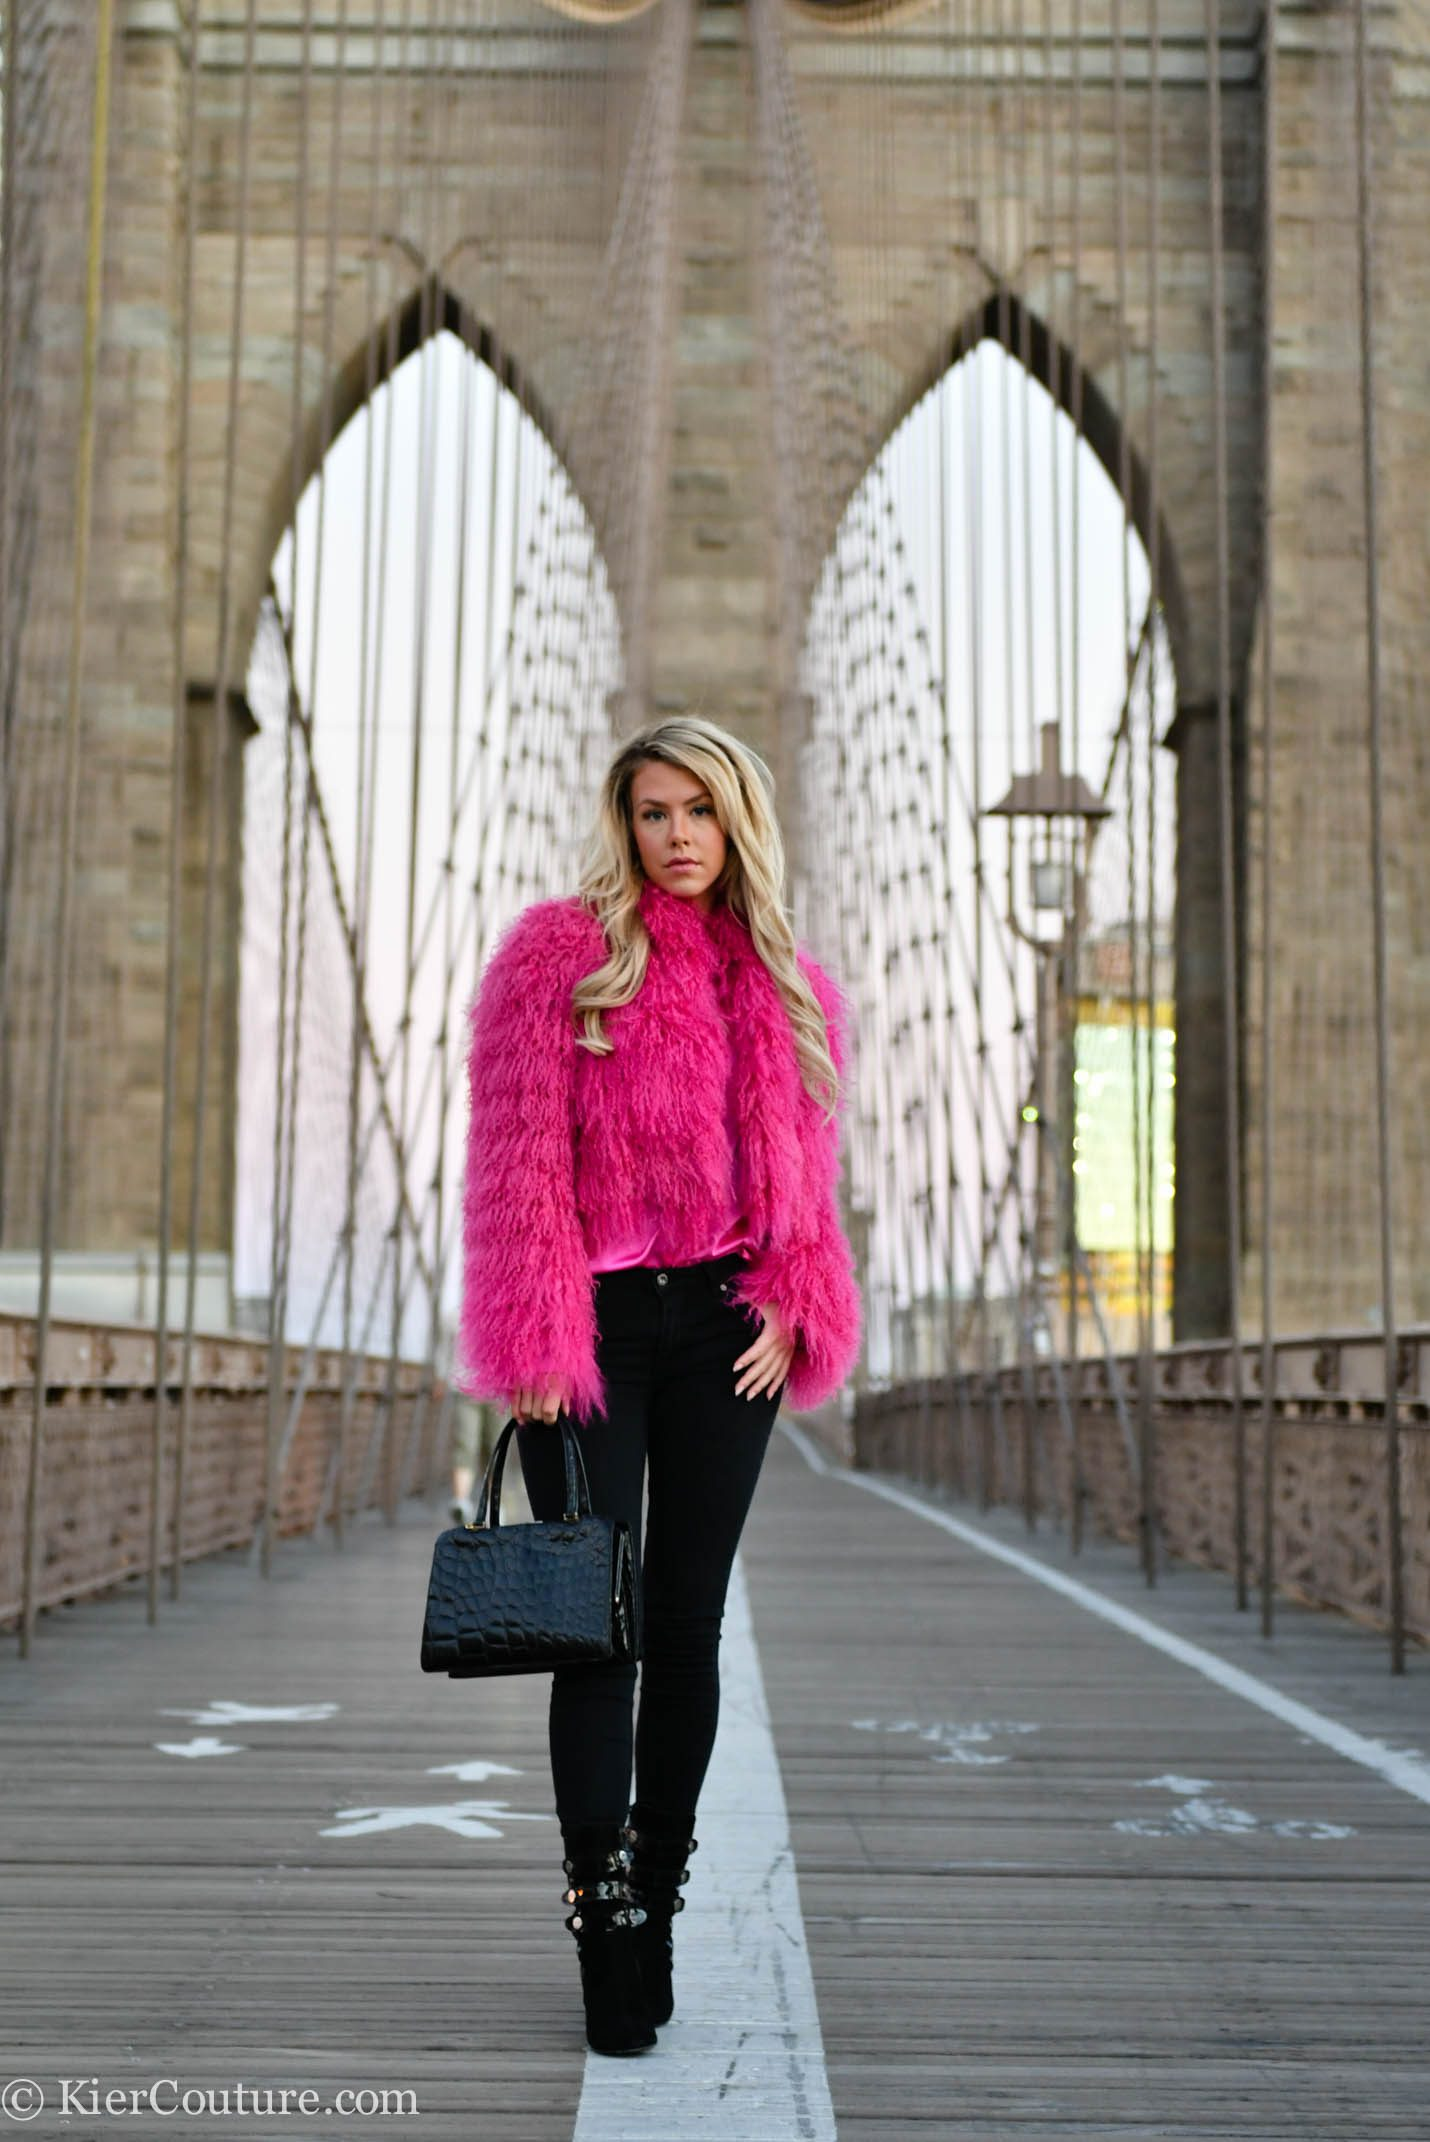 Pink fur jacket outfit